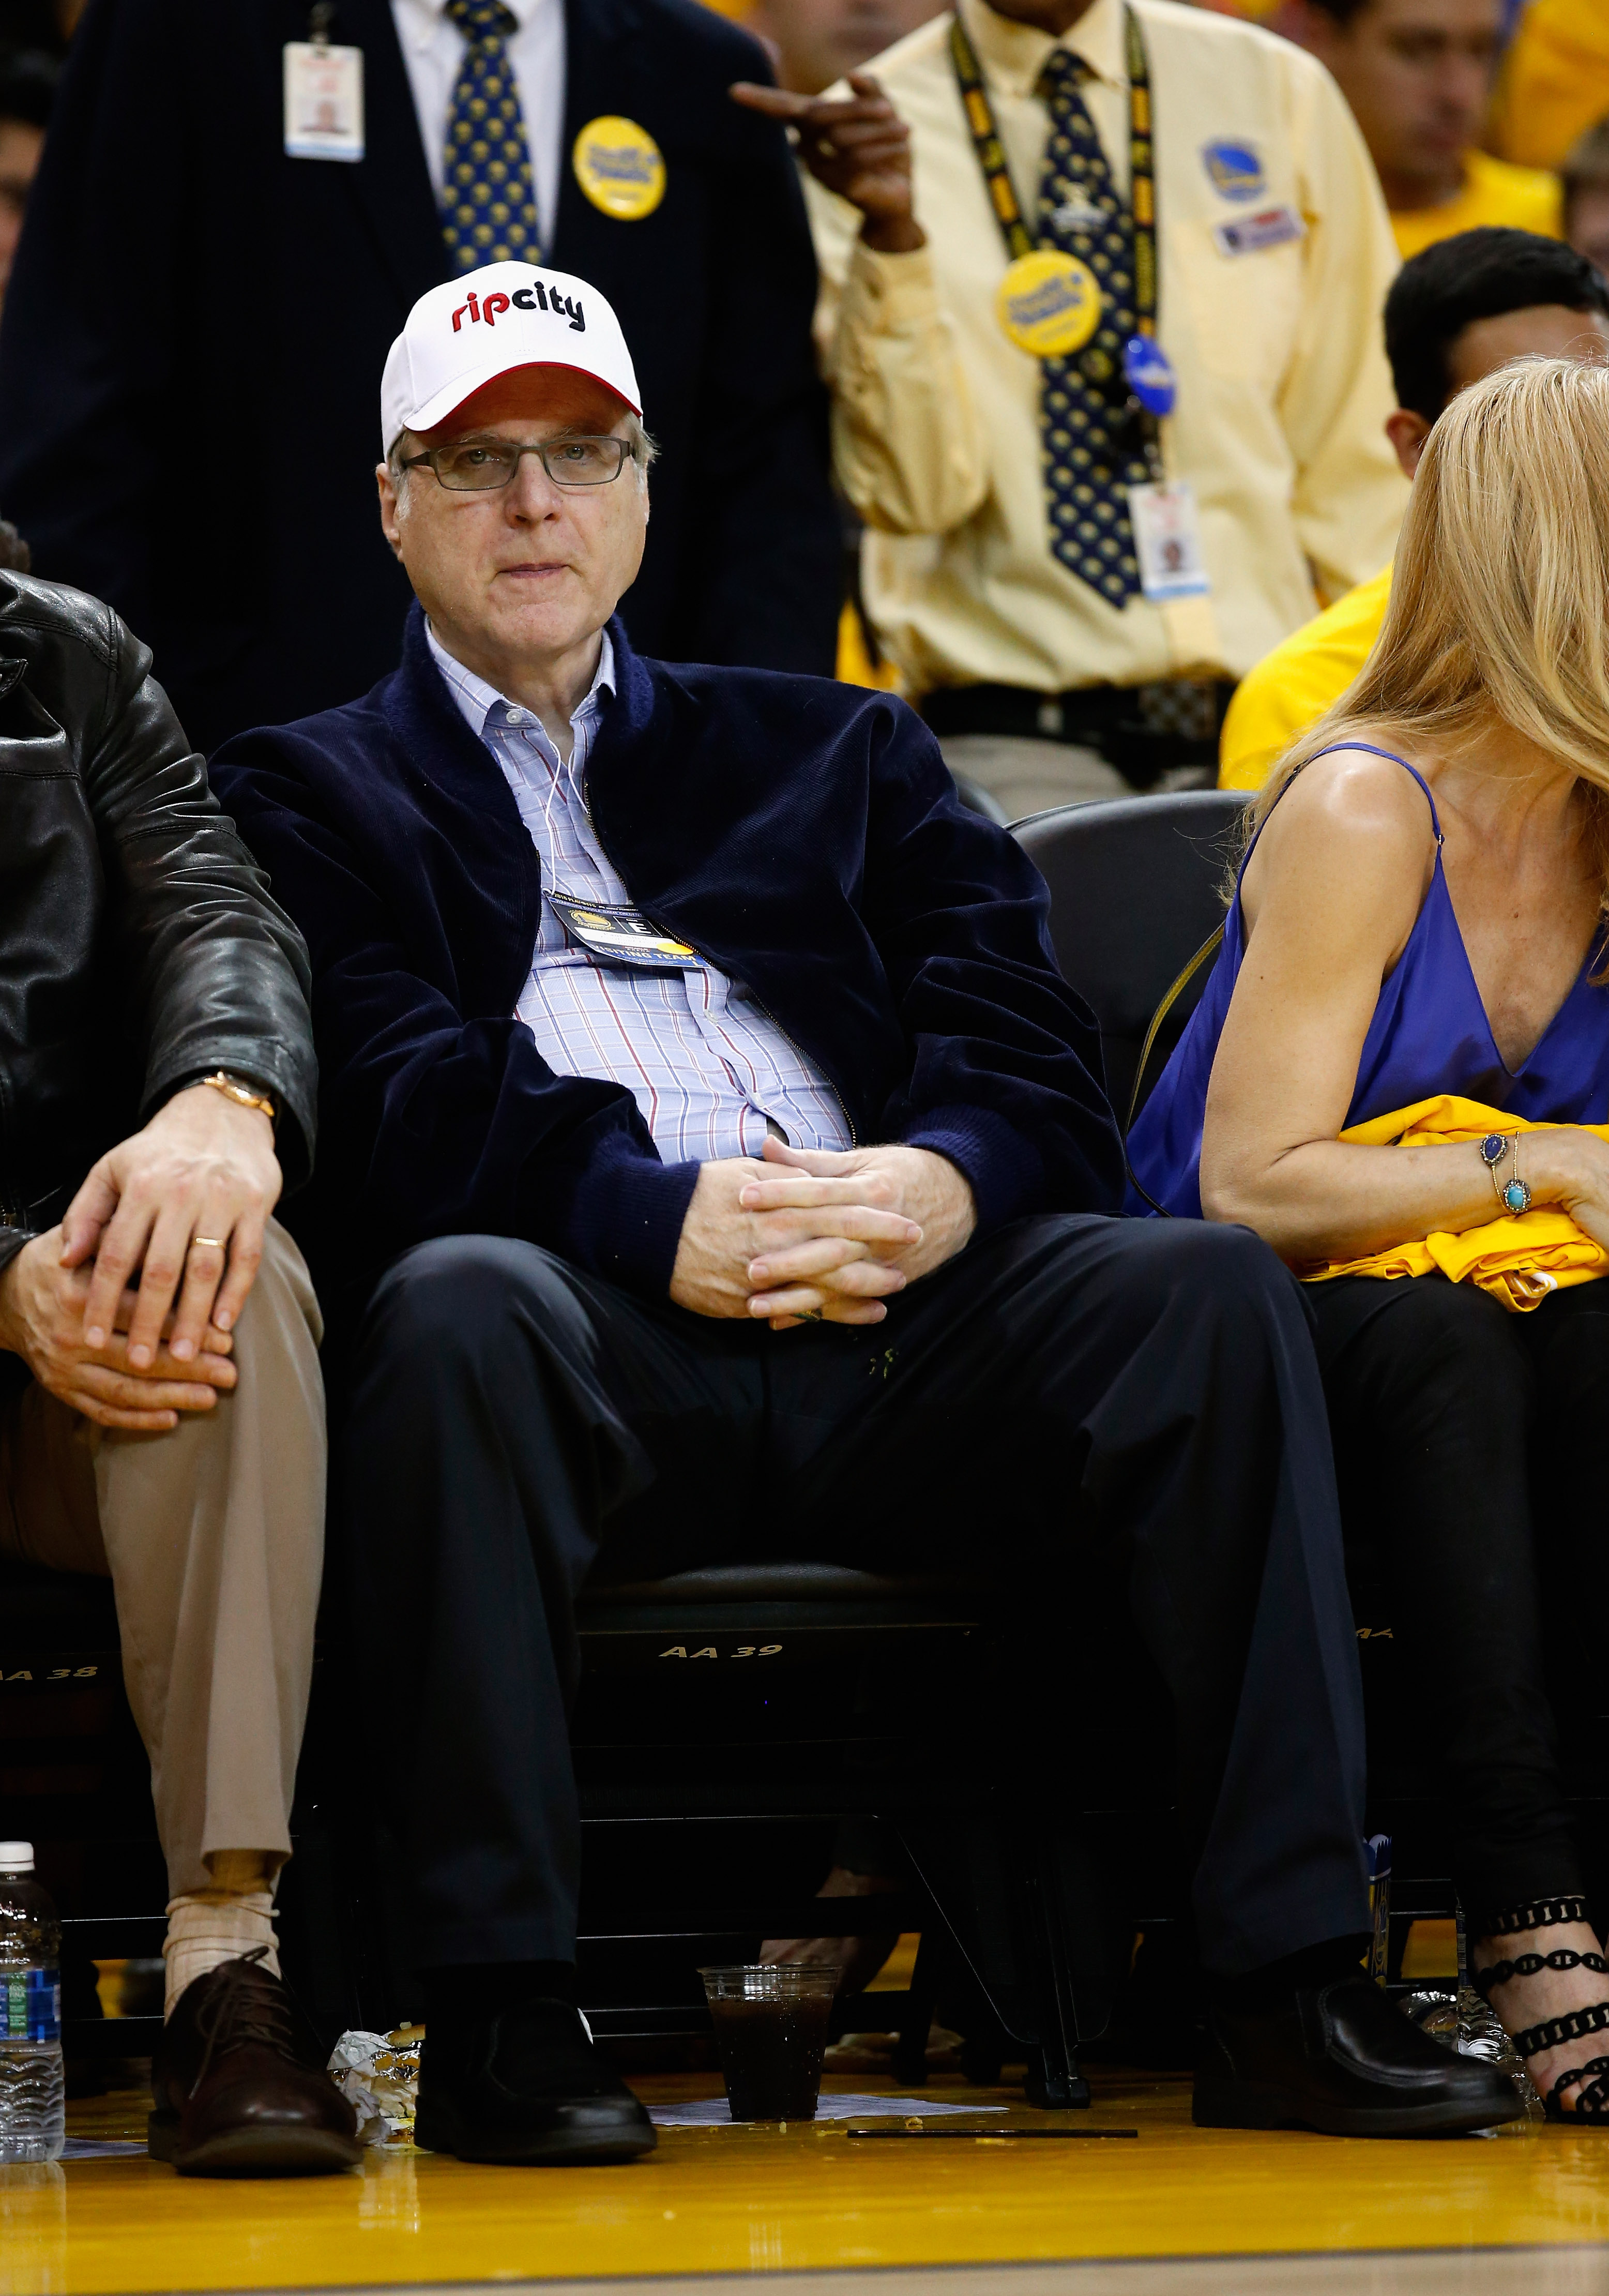 Paul Allen, co-founder of Microsoft and owner of Portland Trail Blazers, watches the Portland Trail Blazers play the Golden State Warriors during Game One of the Western Conference Semifinals for the 2016 NBA Playoffs at ORACLE Arena on May 01, 2016 in Oakland, California. (Source: Getty Images)